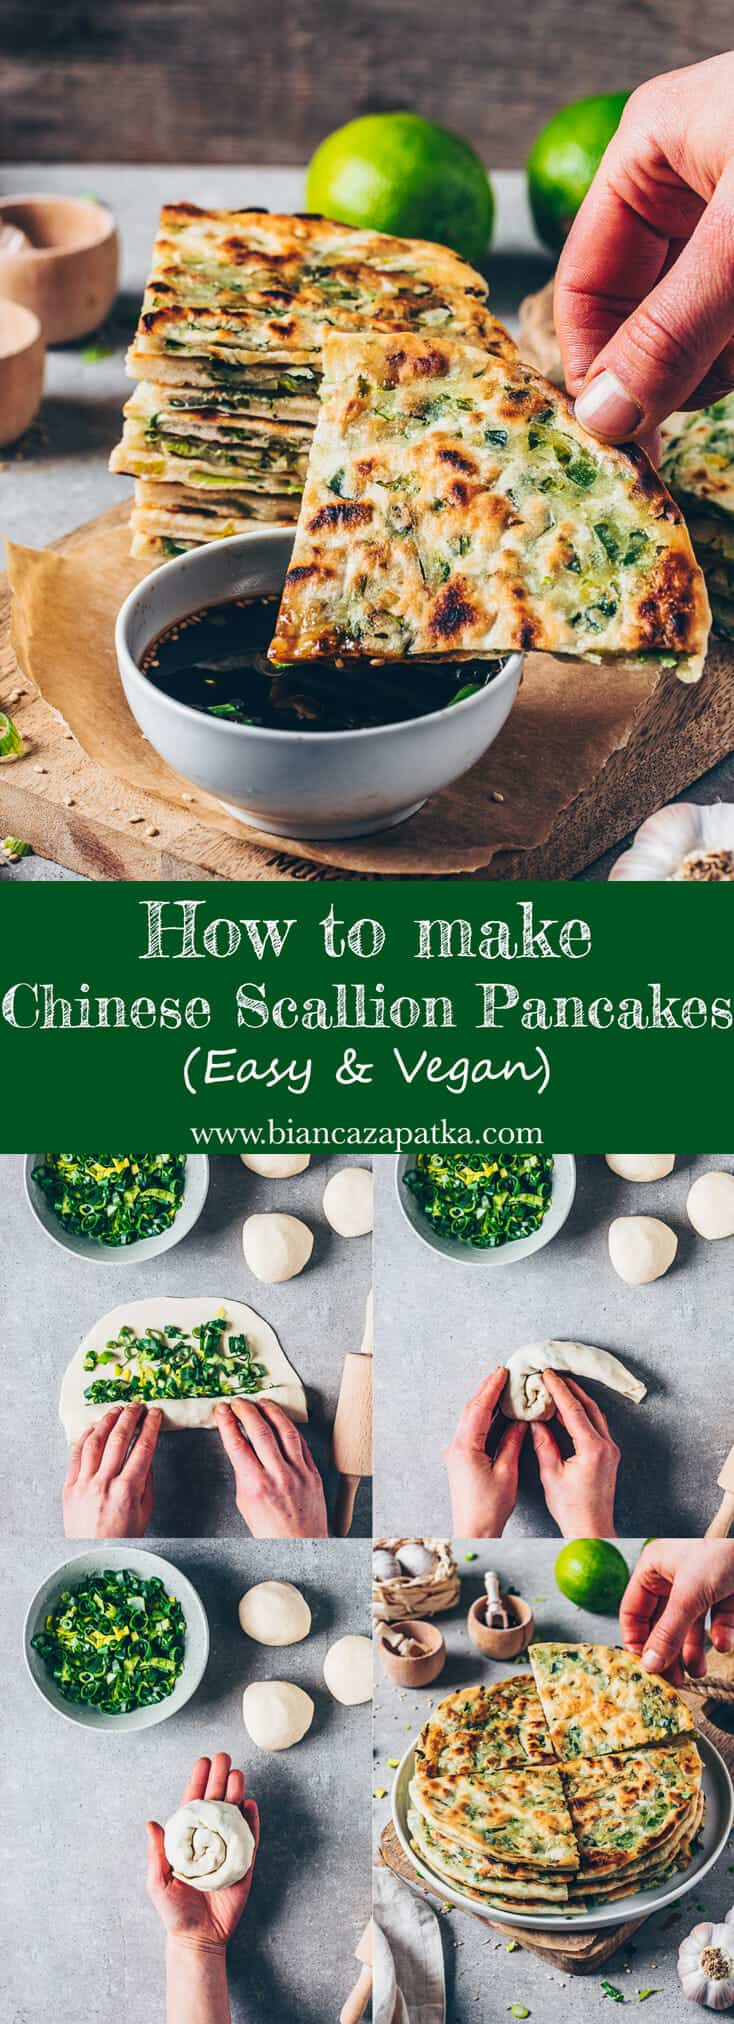 How to make 3-ingredient Scallion Pancakes (Green Onion Pancakes), crispy pan-fried Chinese flatbread (Chive Pancakes), delicious, quick and easy, healthy! Vegan Recipe. Step-by-Step instruction.